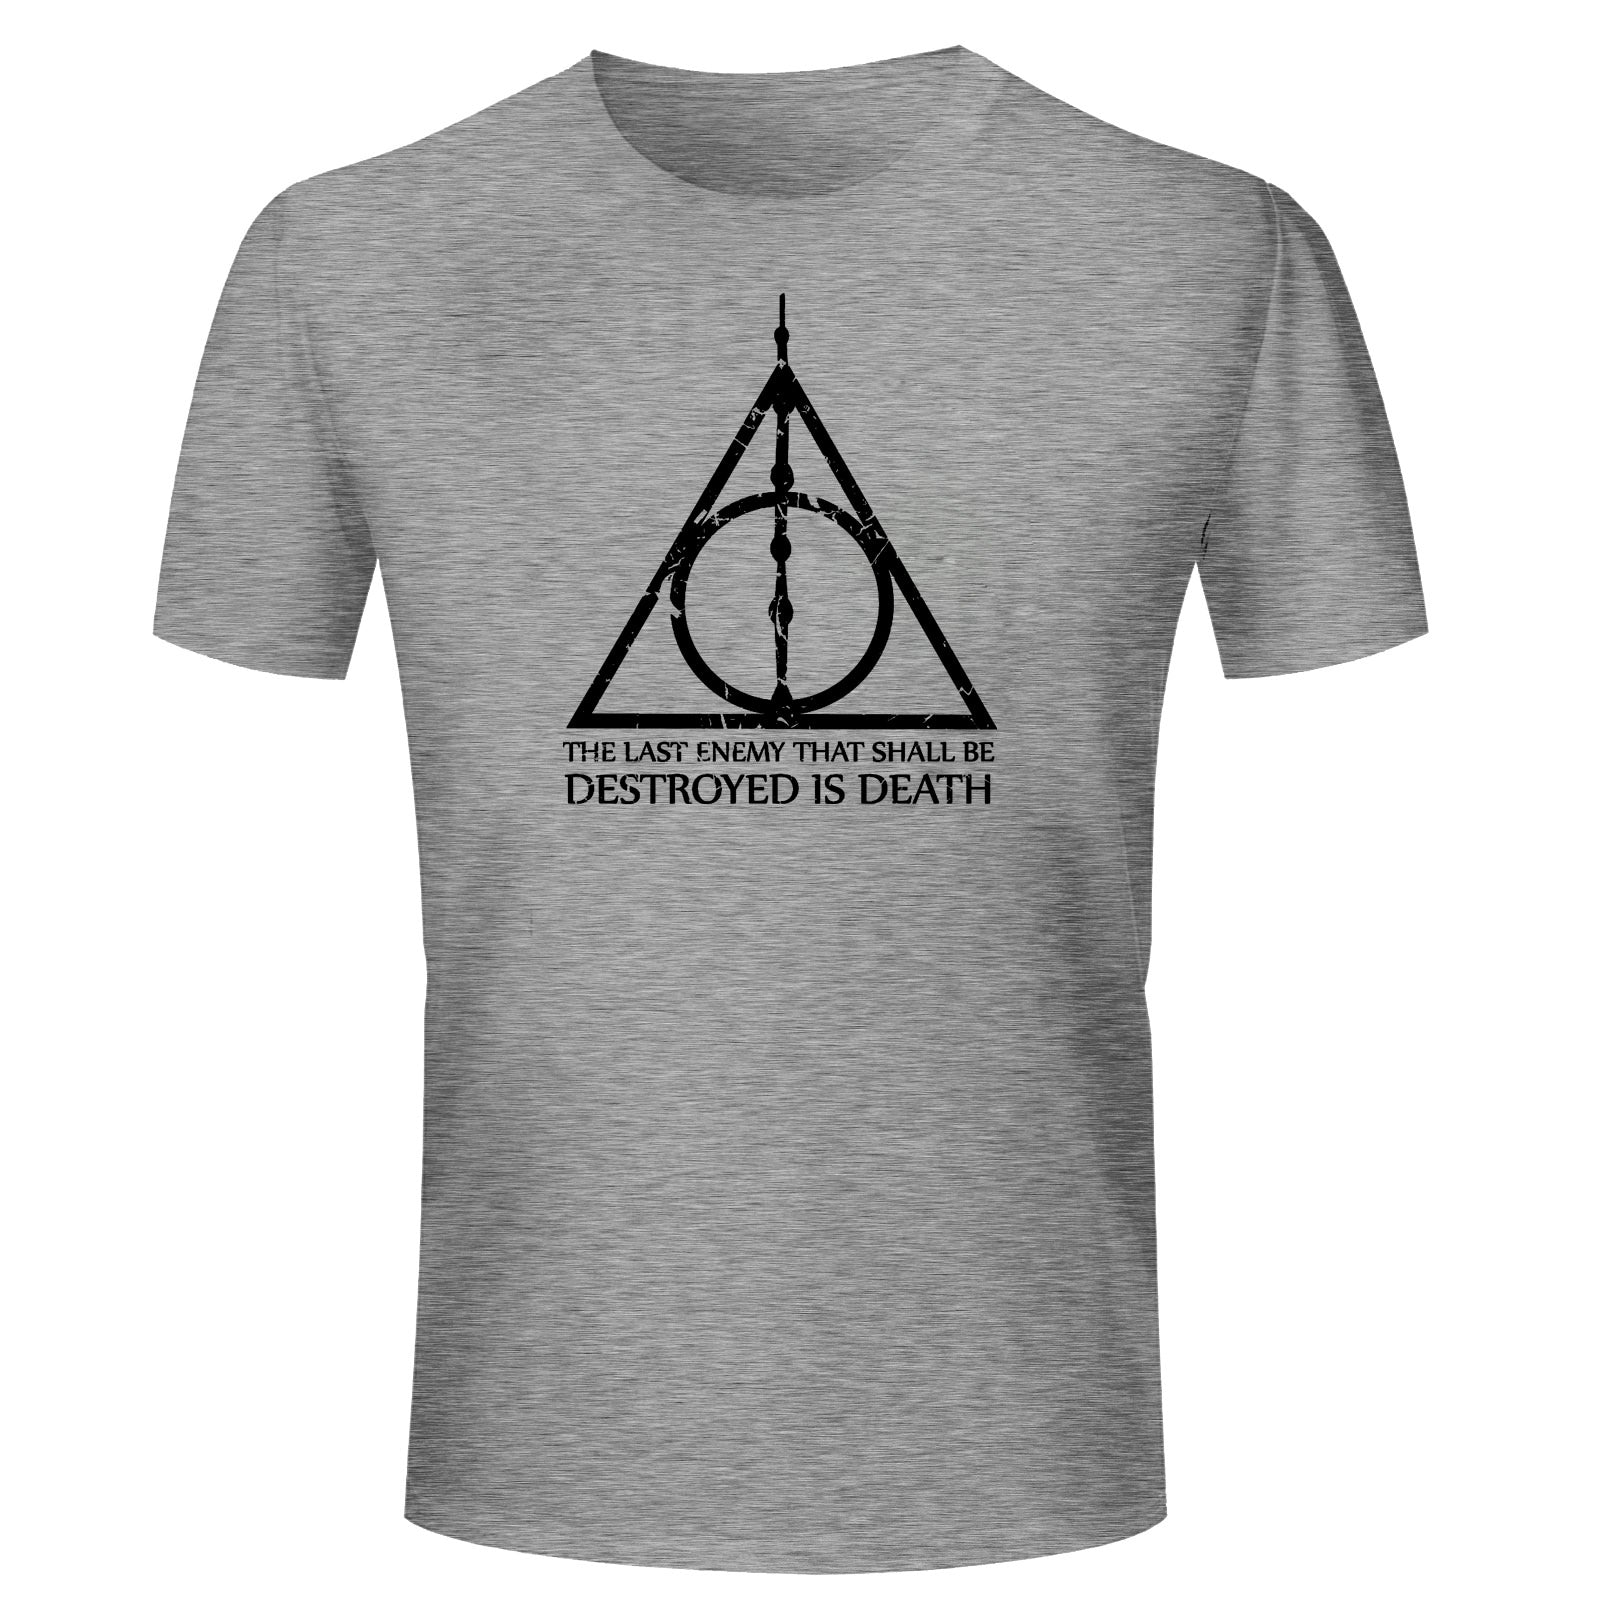 d2ed6a31f T Shirts for Men Harry Potter Quotes Texts Grey T Shirt Round Neck Half  Sleeve ...